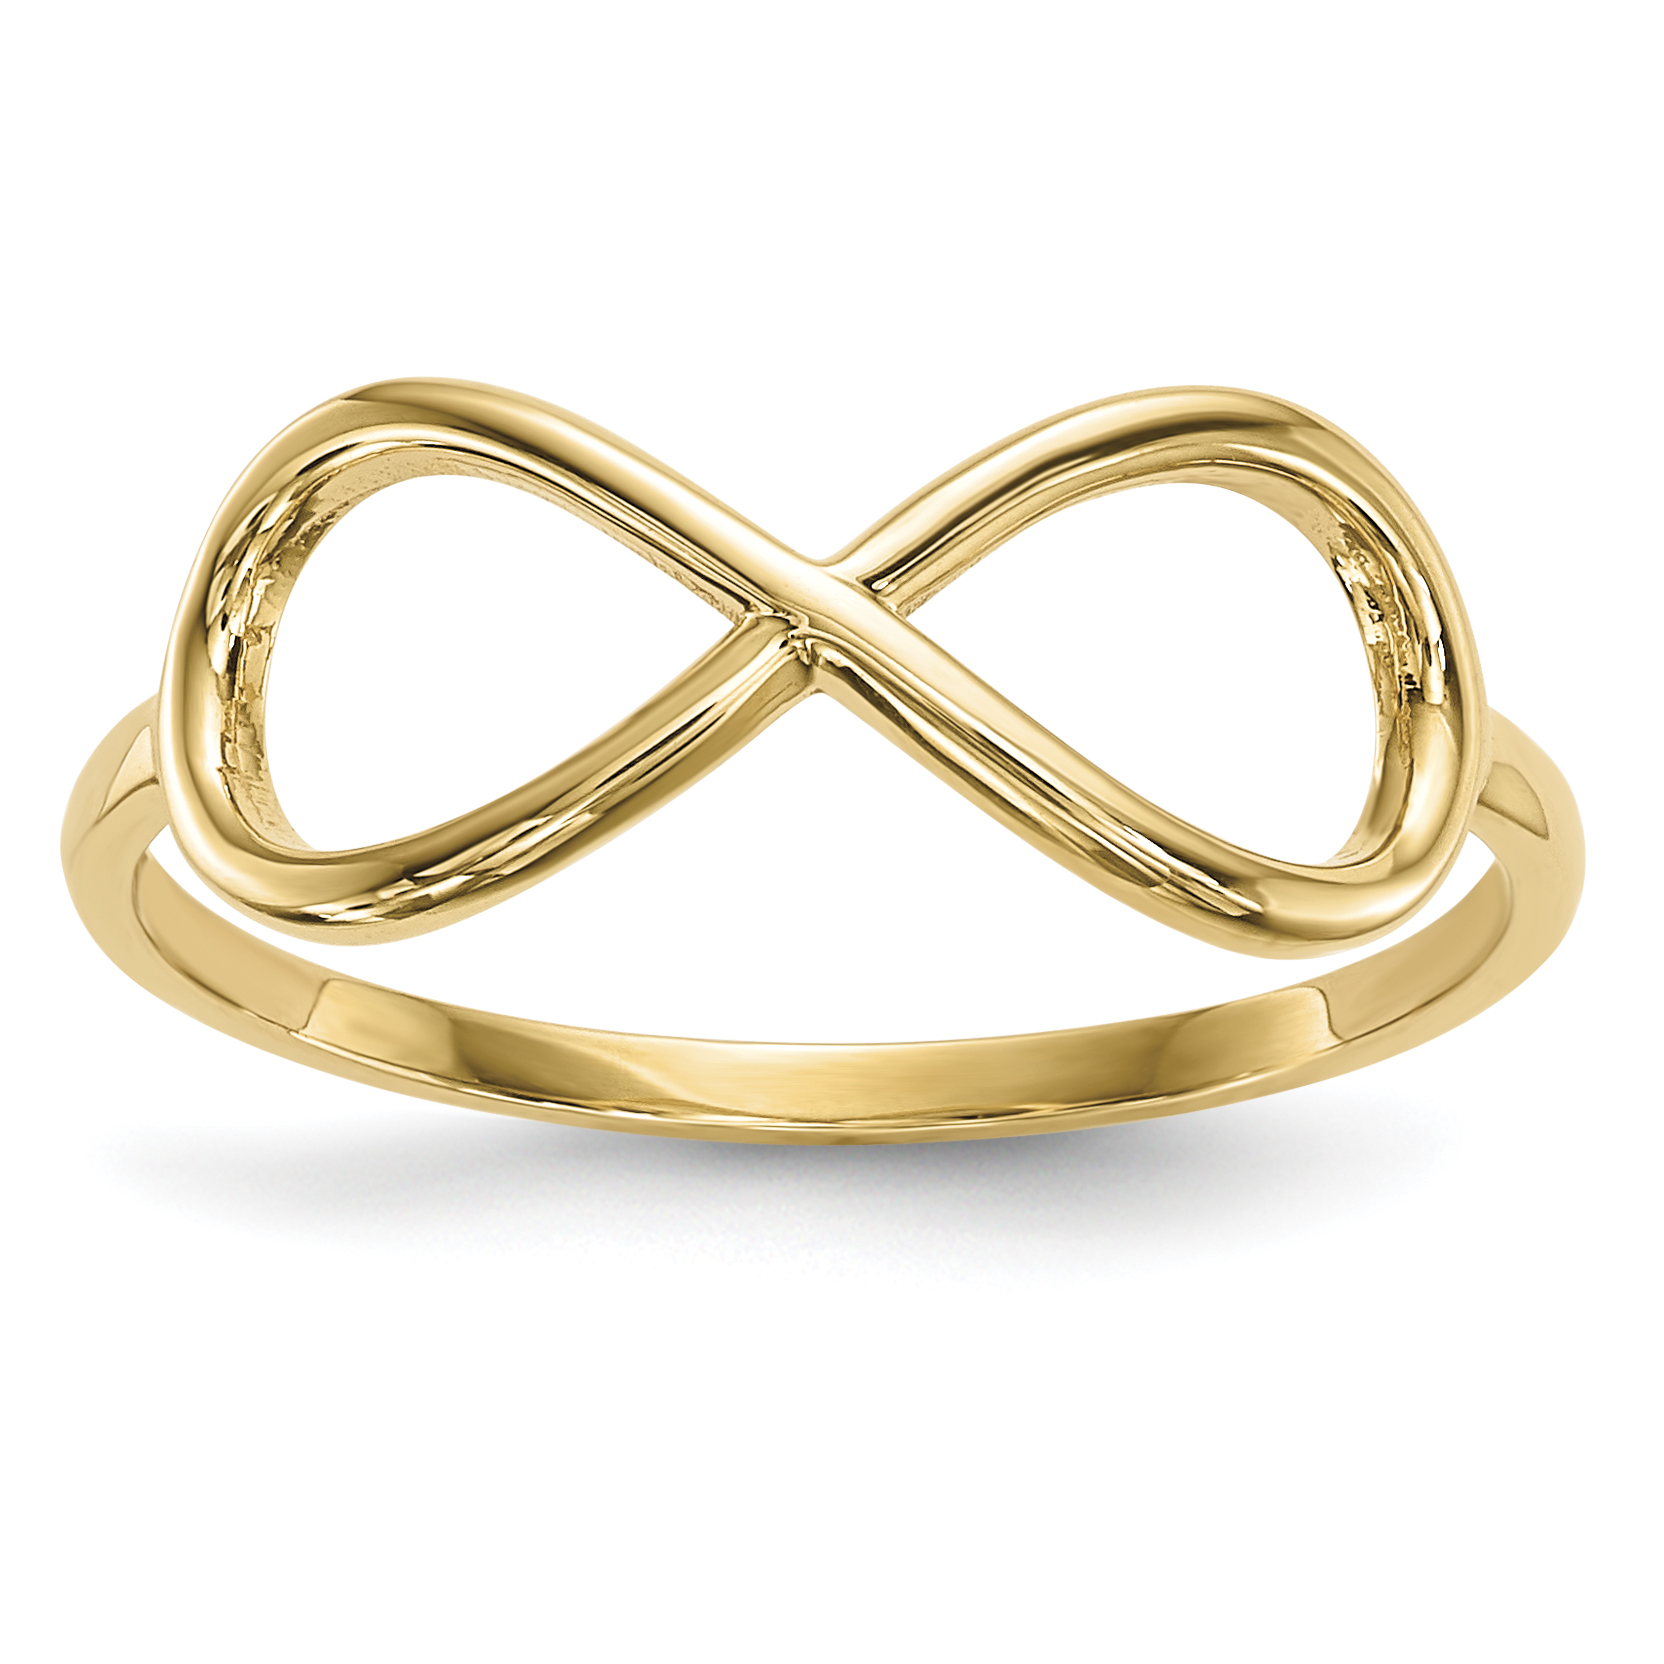 14kt Yellow Gold Infinity Band Ring Size 7.00 Fine Jewelry For Women Gift Set by IceCarats Designer Jewelry Gift USA